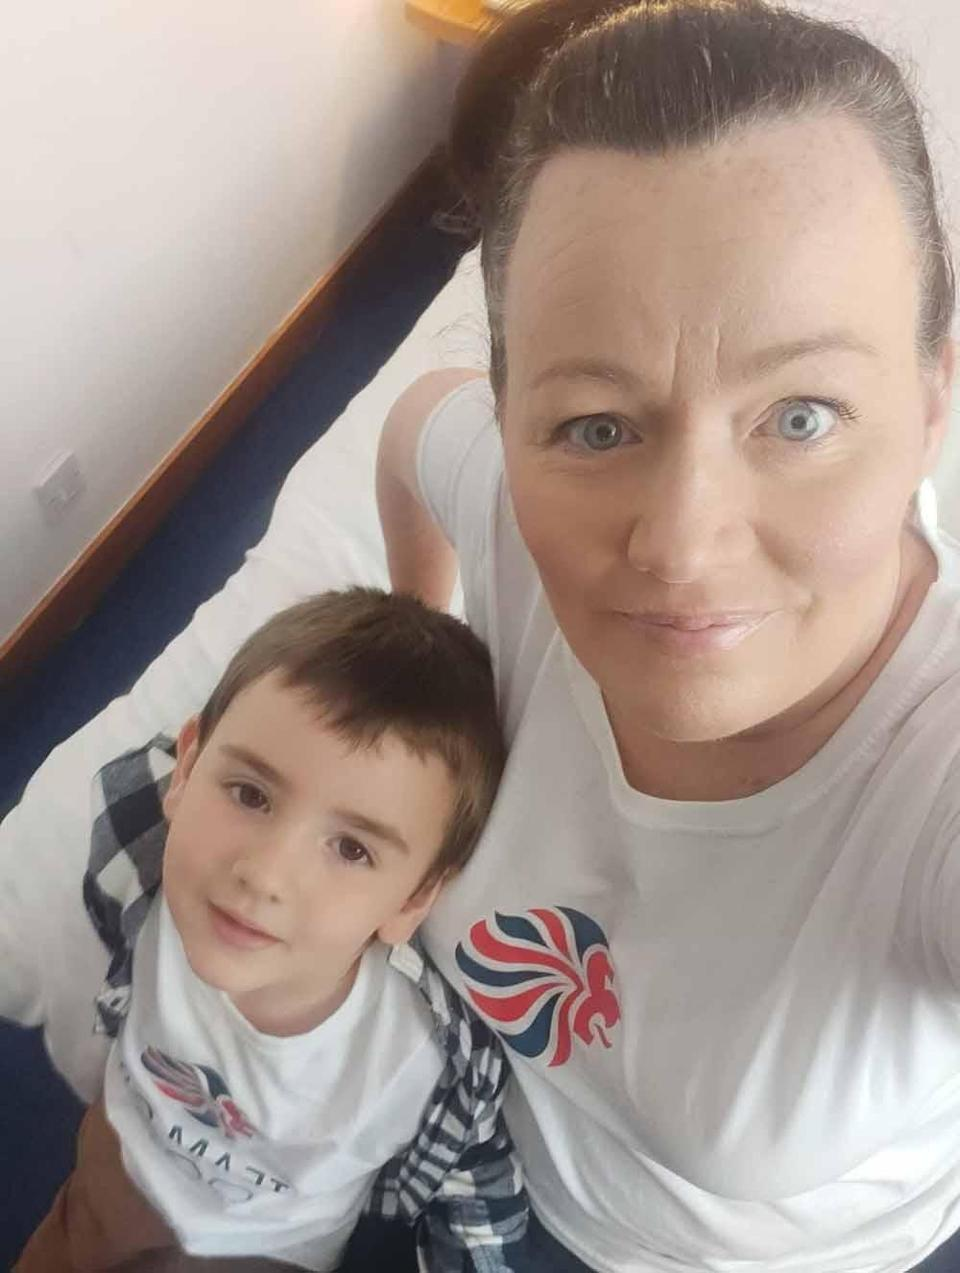 Jemma and her son Magnus, four. PA REAL LIFE COLLECT